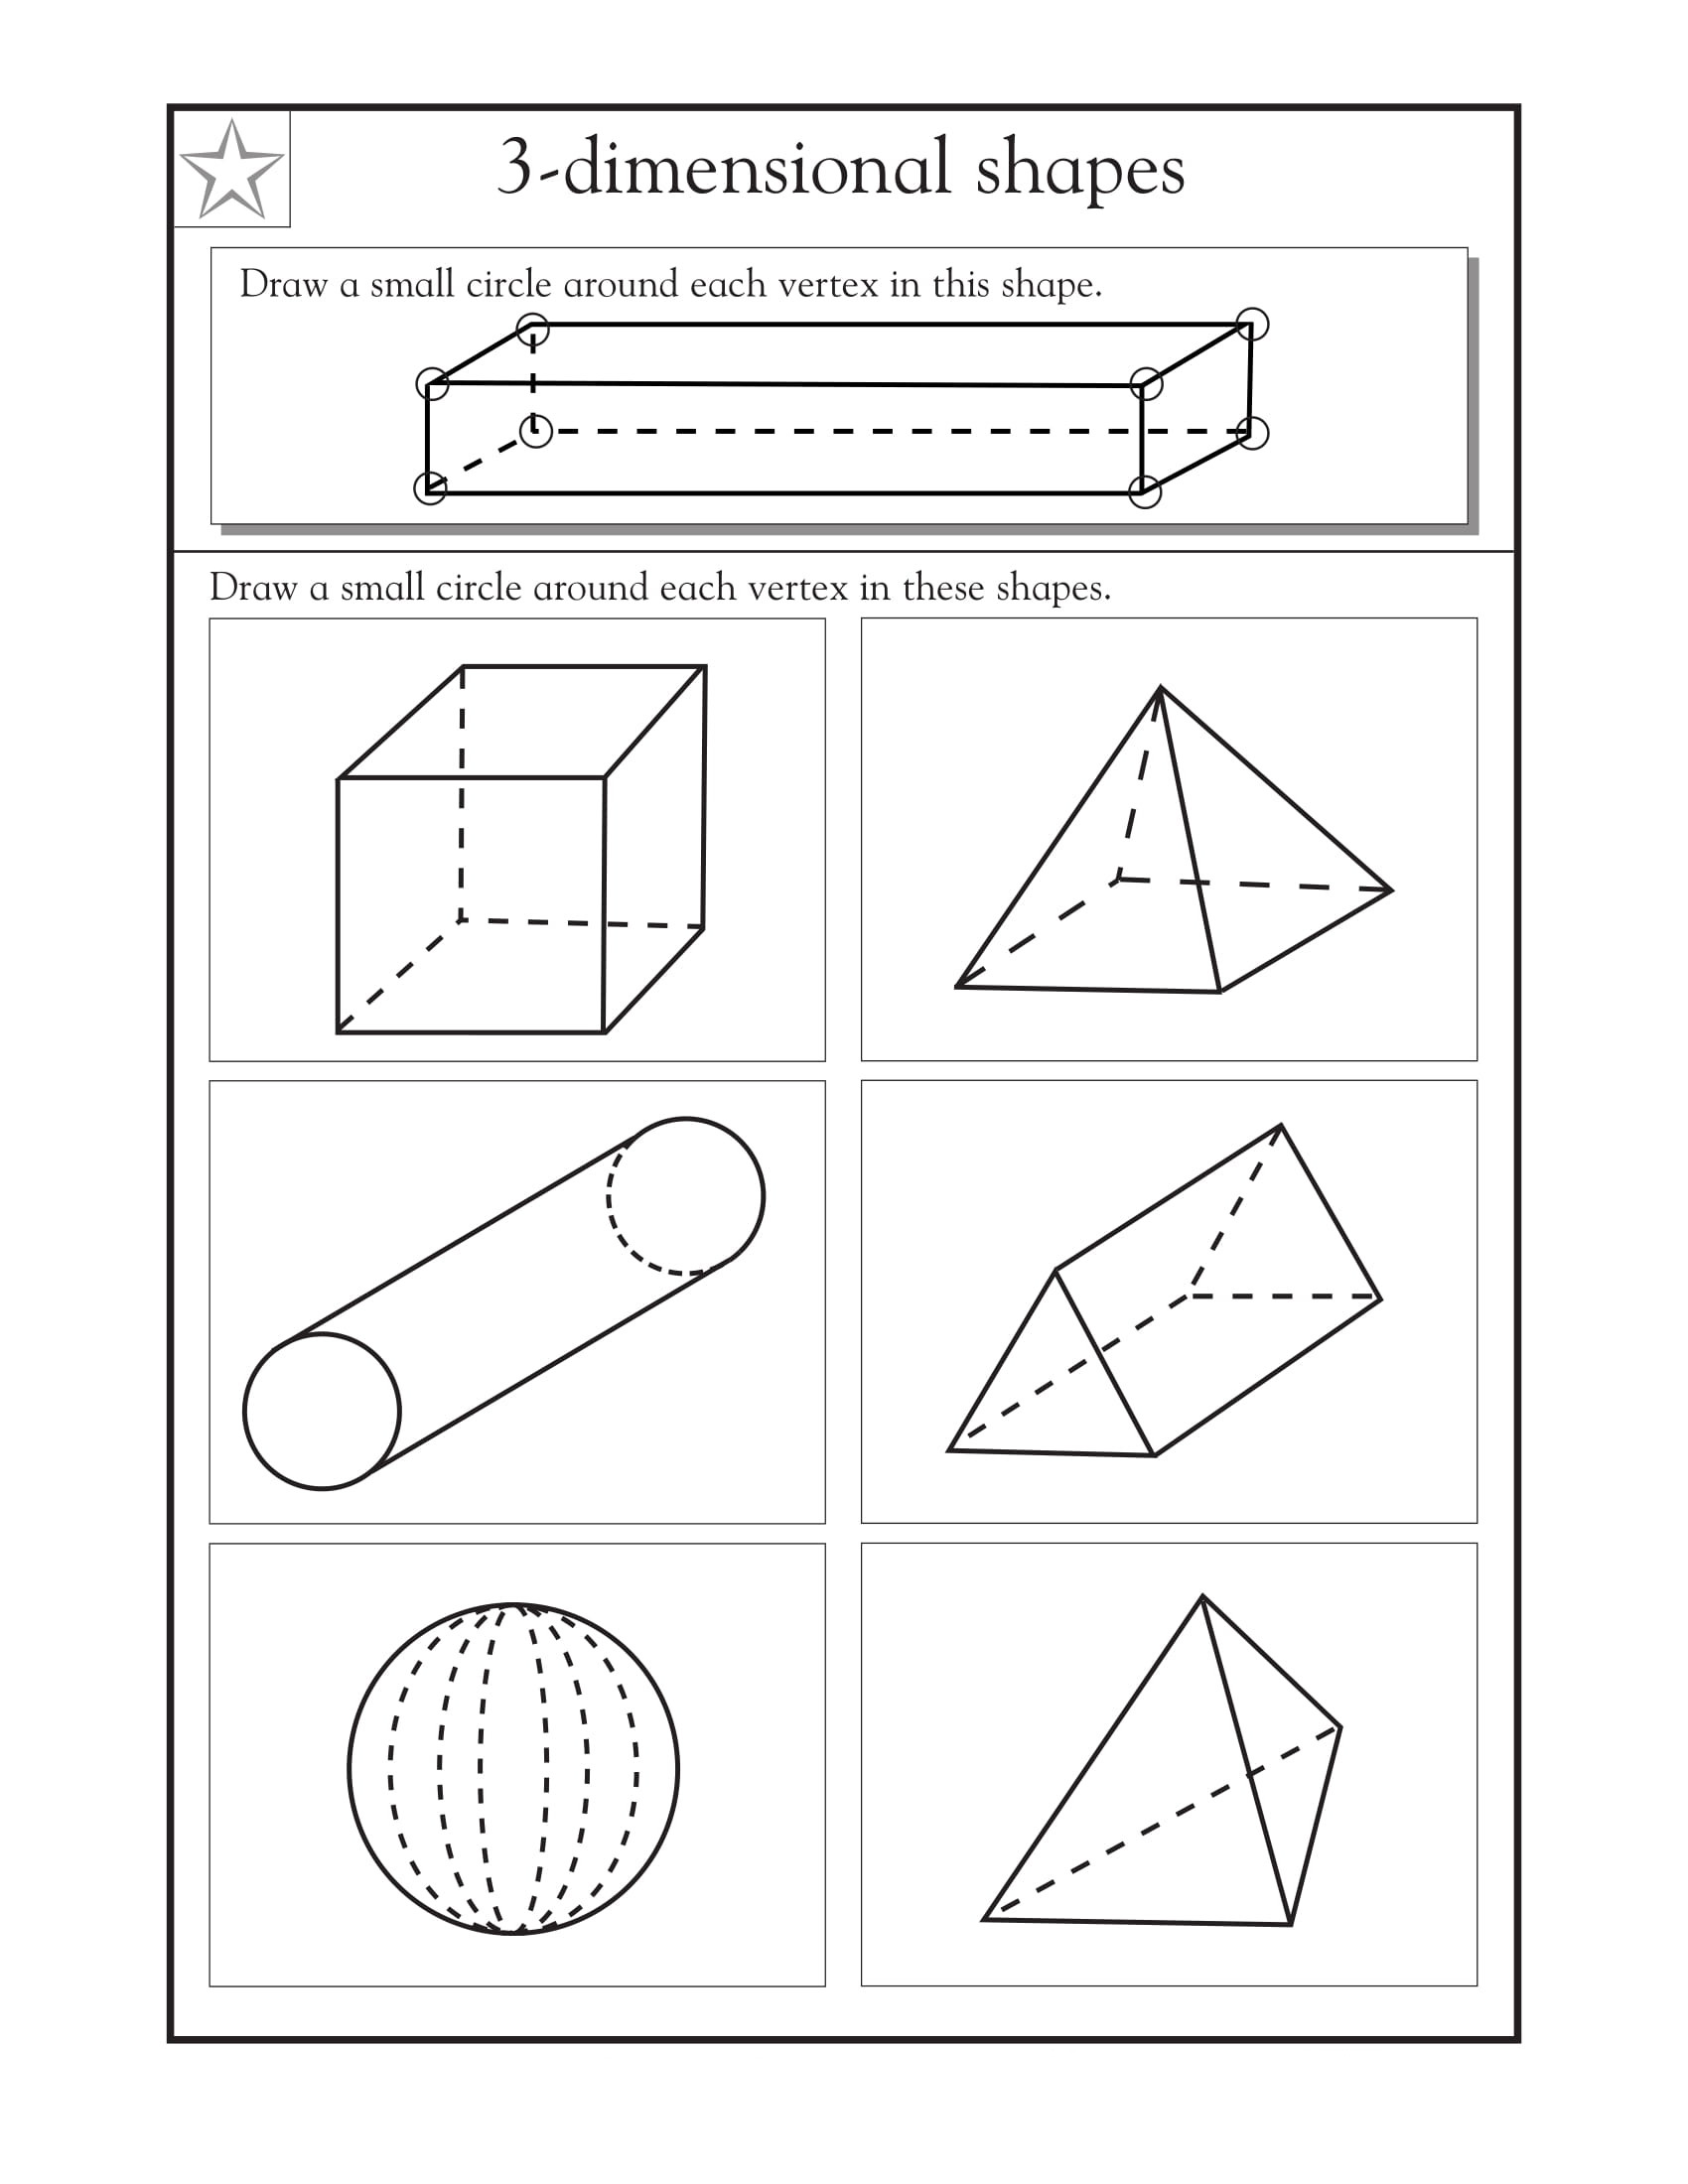 Polygon Worksheets 4th Grade 4th Grade Math Worksheets Best Coloring Pages for Kids